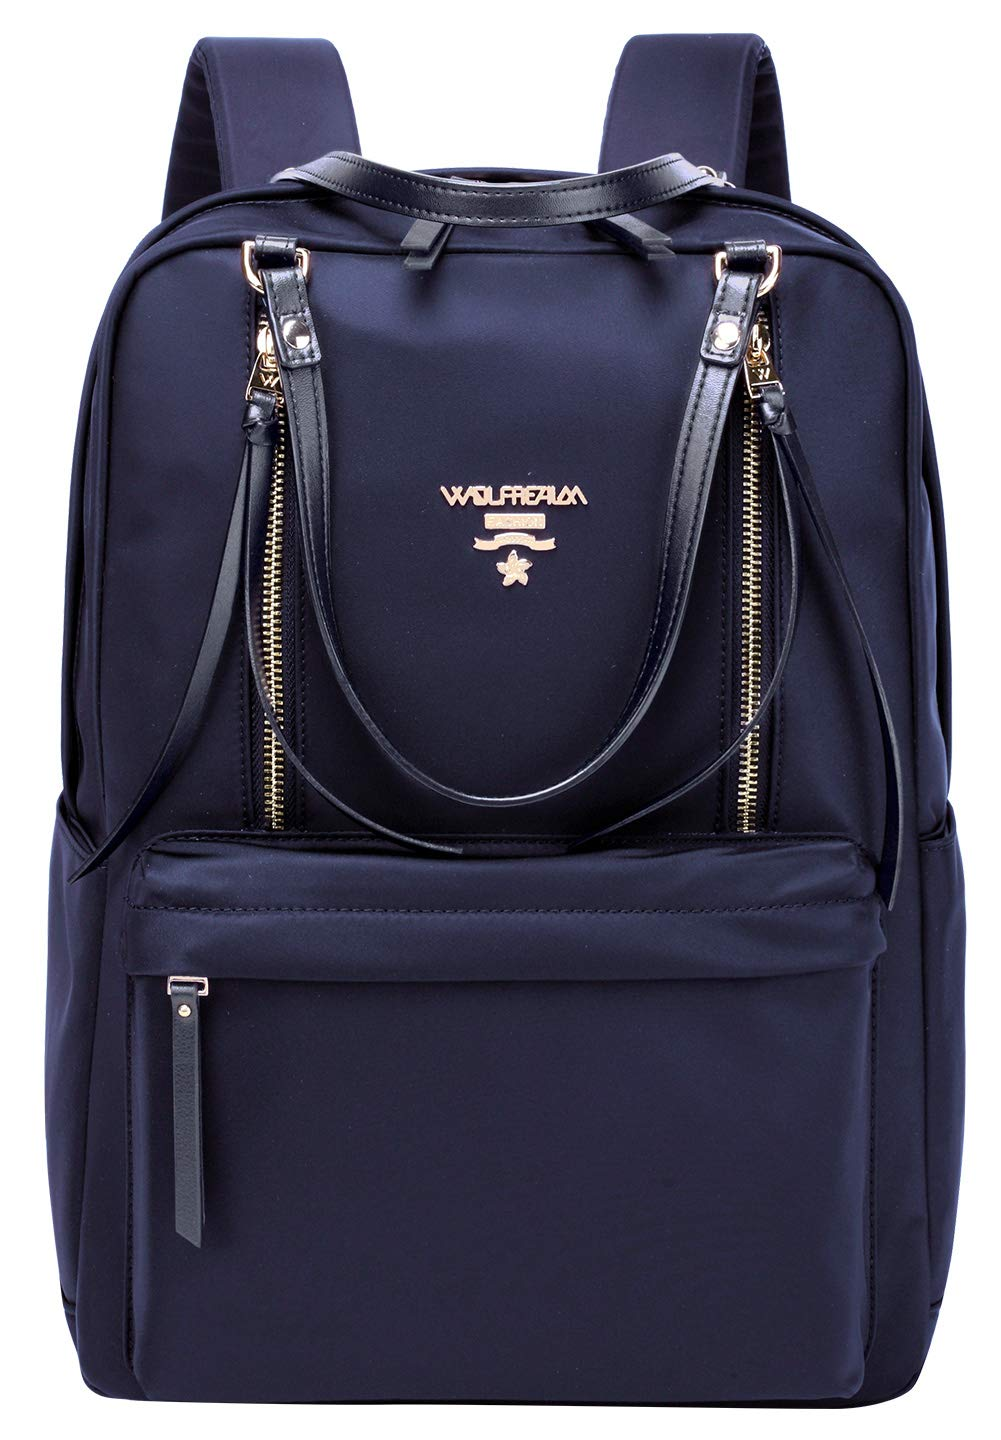 b4fbafc06 Amazon.com: Wolfrealm Laptop Backpack for Women Lightweight School Bag  Ladies Water-Repellent Business Backpack Purse 14